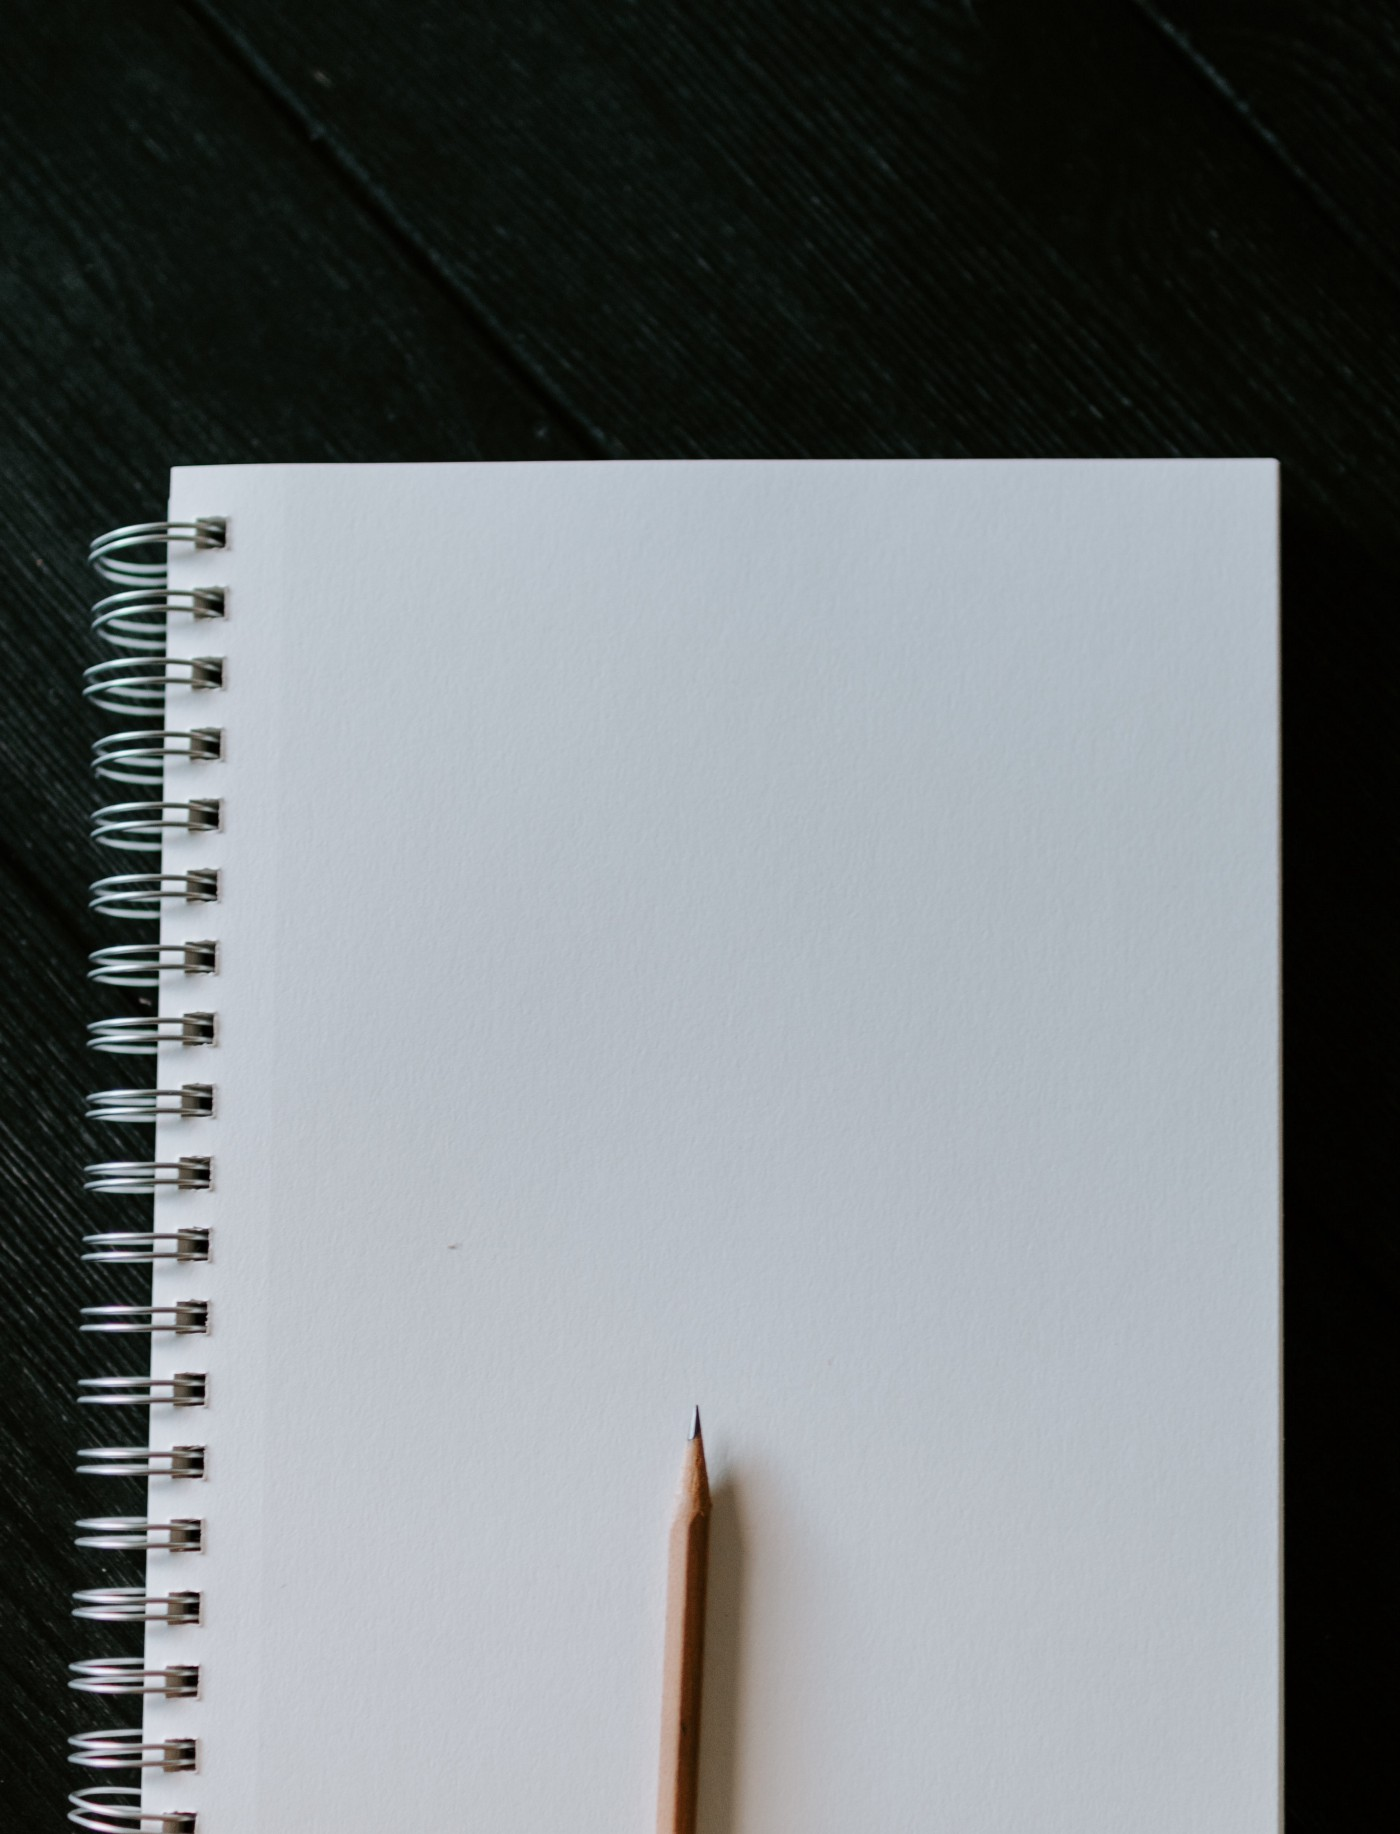 Black background, fresh white page of spiral bound notebook, and a freshly sharpened pencil